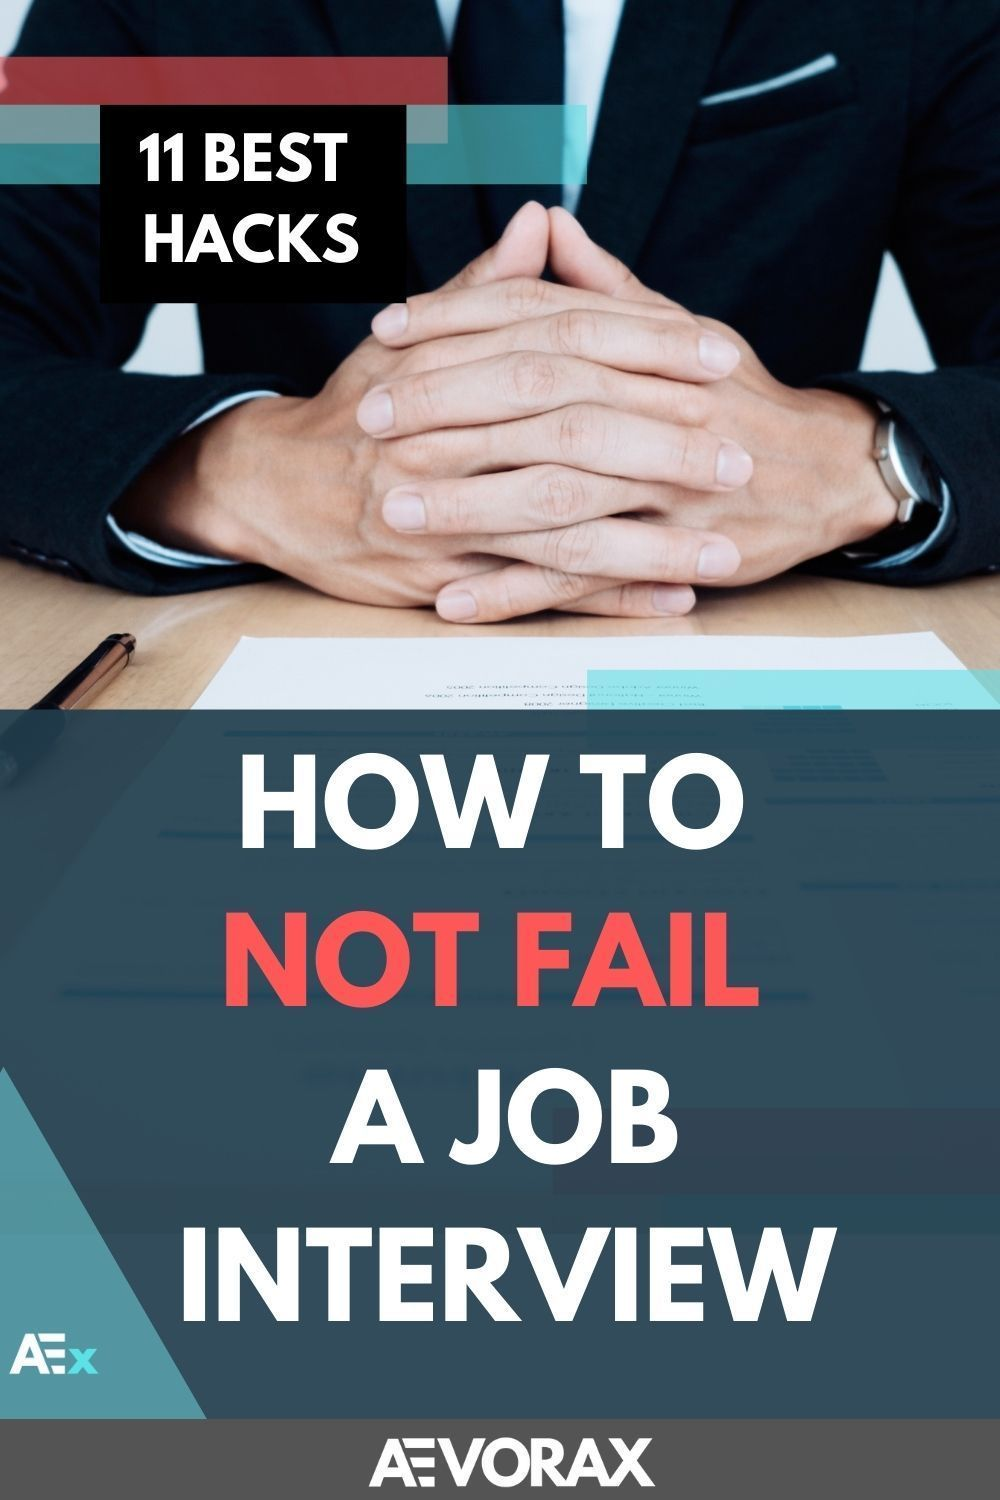 11 Powerful Hacks to Succeed in Job Interviews and Get Hired